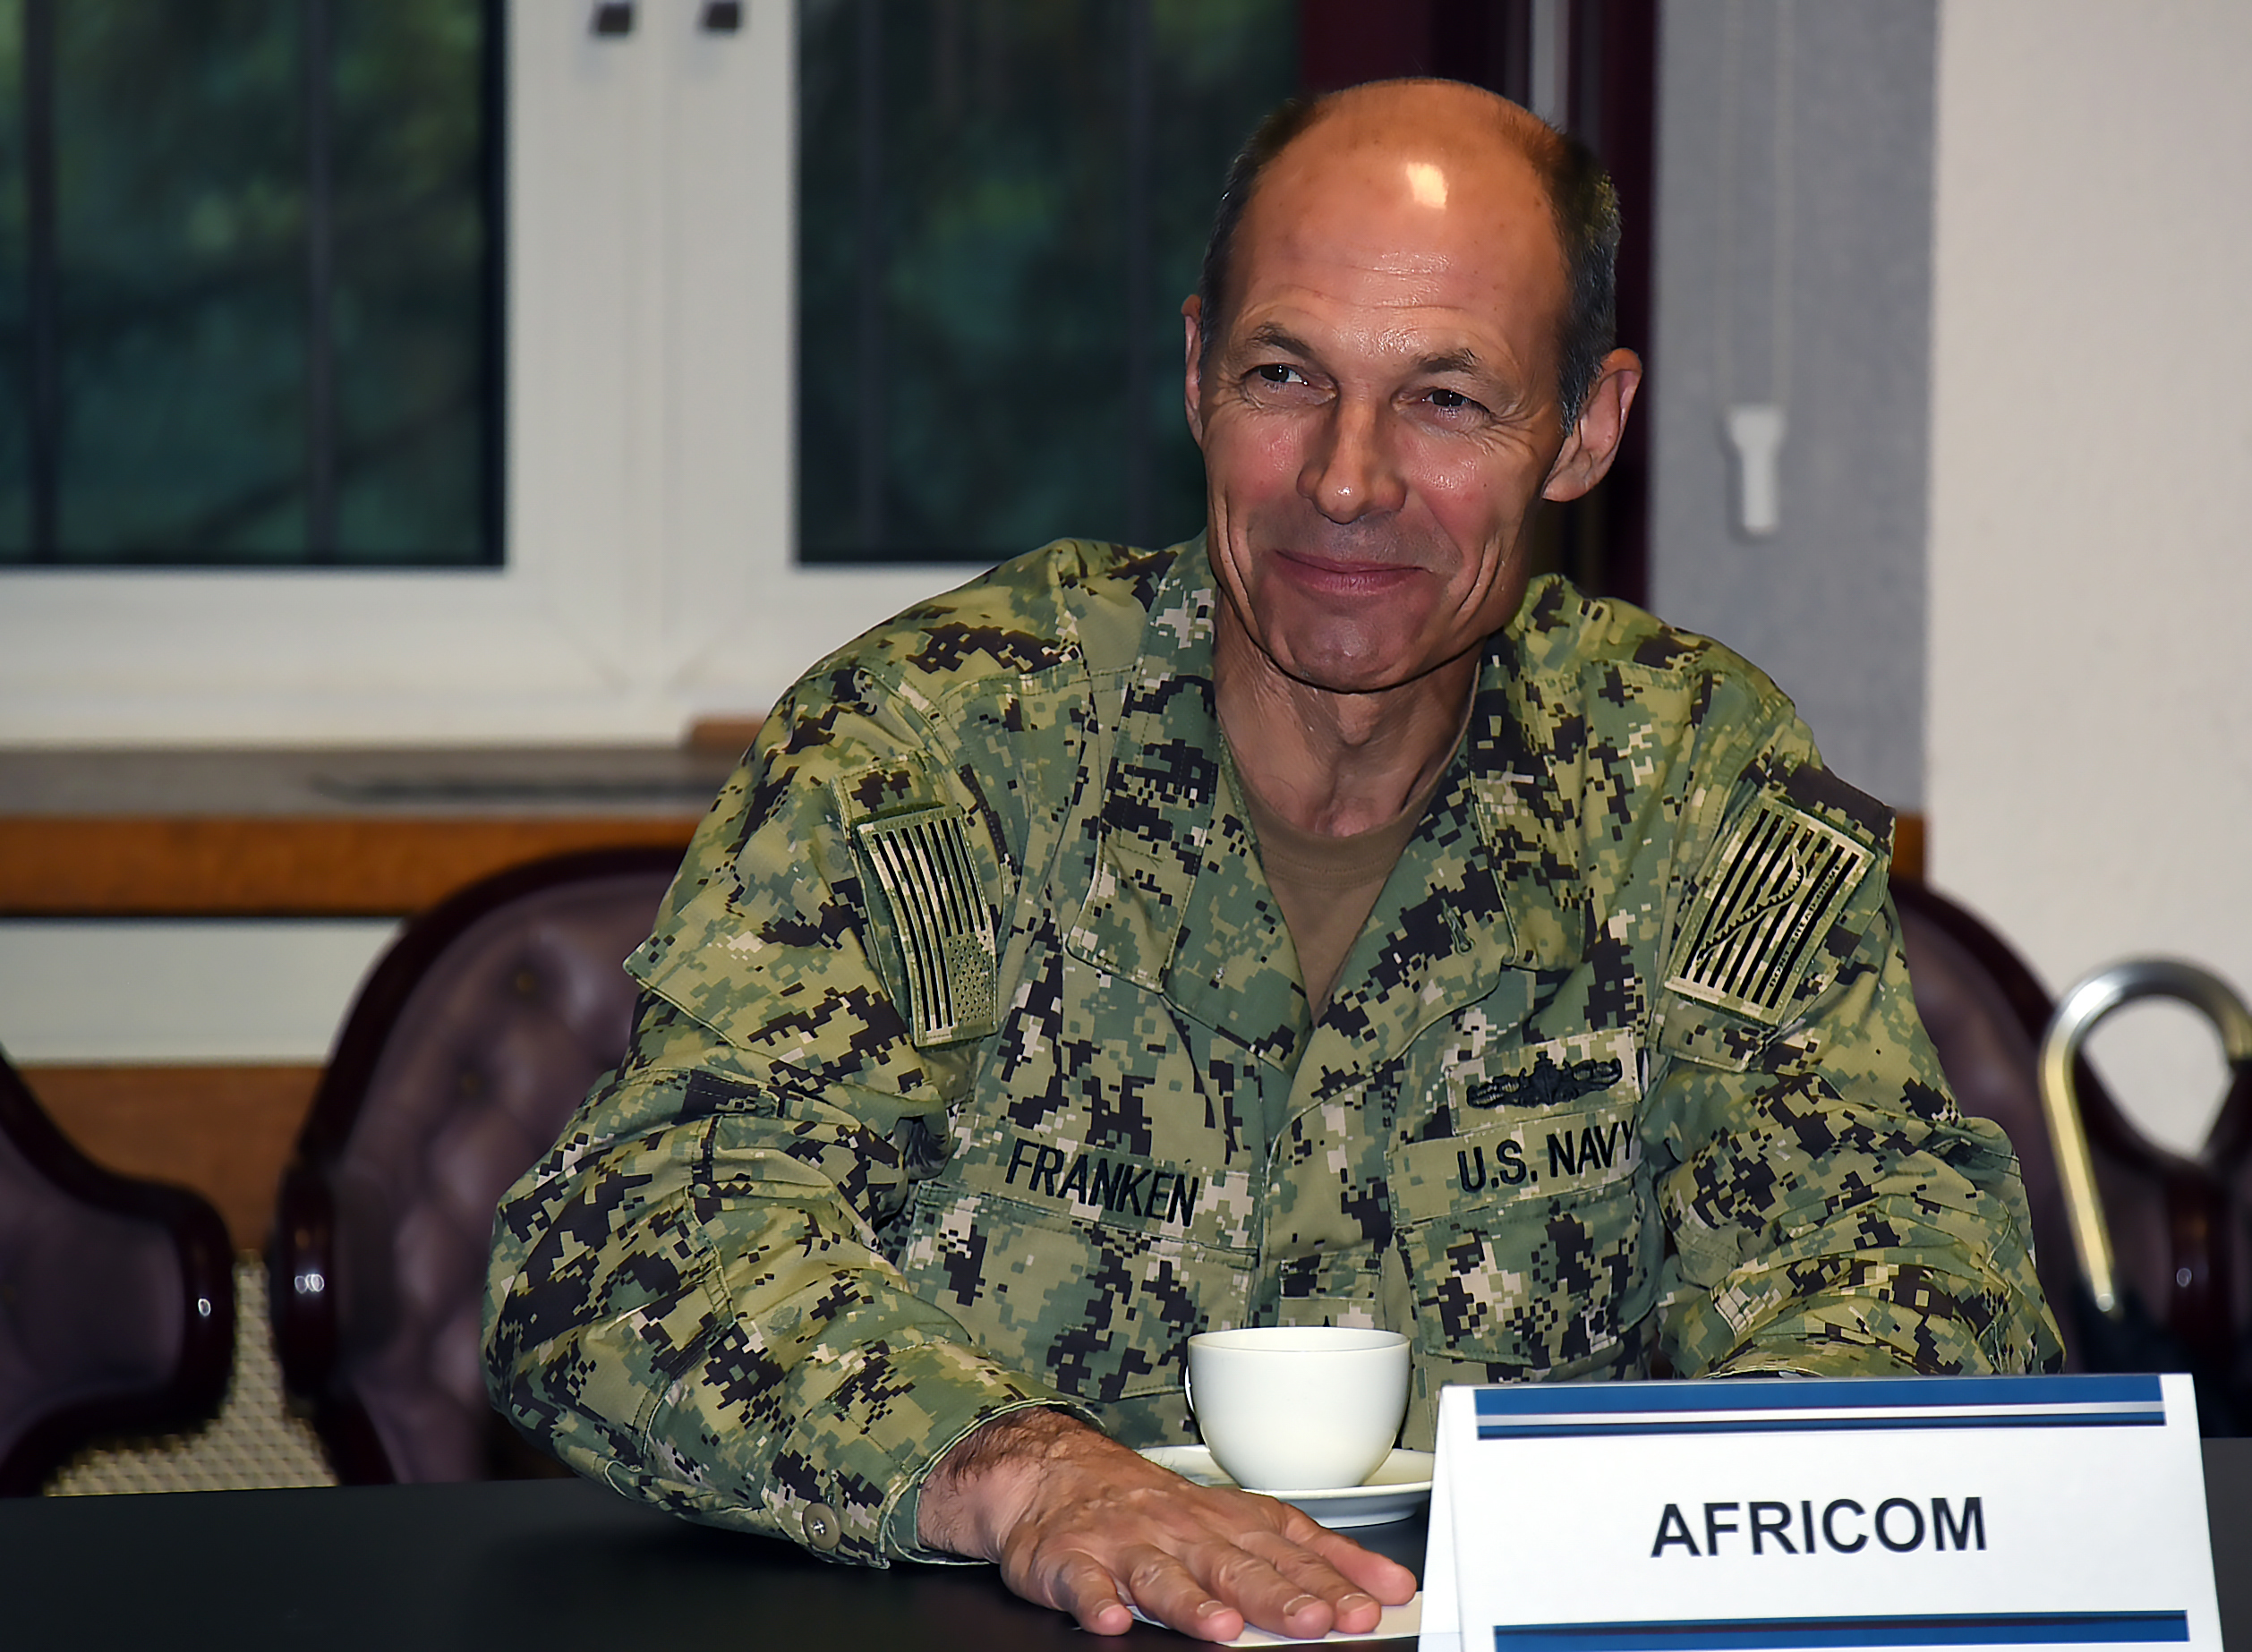 STUTTGART, Germany (July 26, 2017) – U.S. Navy Vice Adm. Michael Franken, deputy to the Commander for Military Operations for the U.S. Africa Command, answers questions by 16 military and civilian leaders during their visit to AFRICOM in Stuttgart July 26. This field trip was part of the Program on Terrorism and Security Studies held at the George C. Marshall European Center for Security Studies in Garmisch-Partenkirchen, Germany. (Marshall Center photo by Christine June)